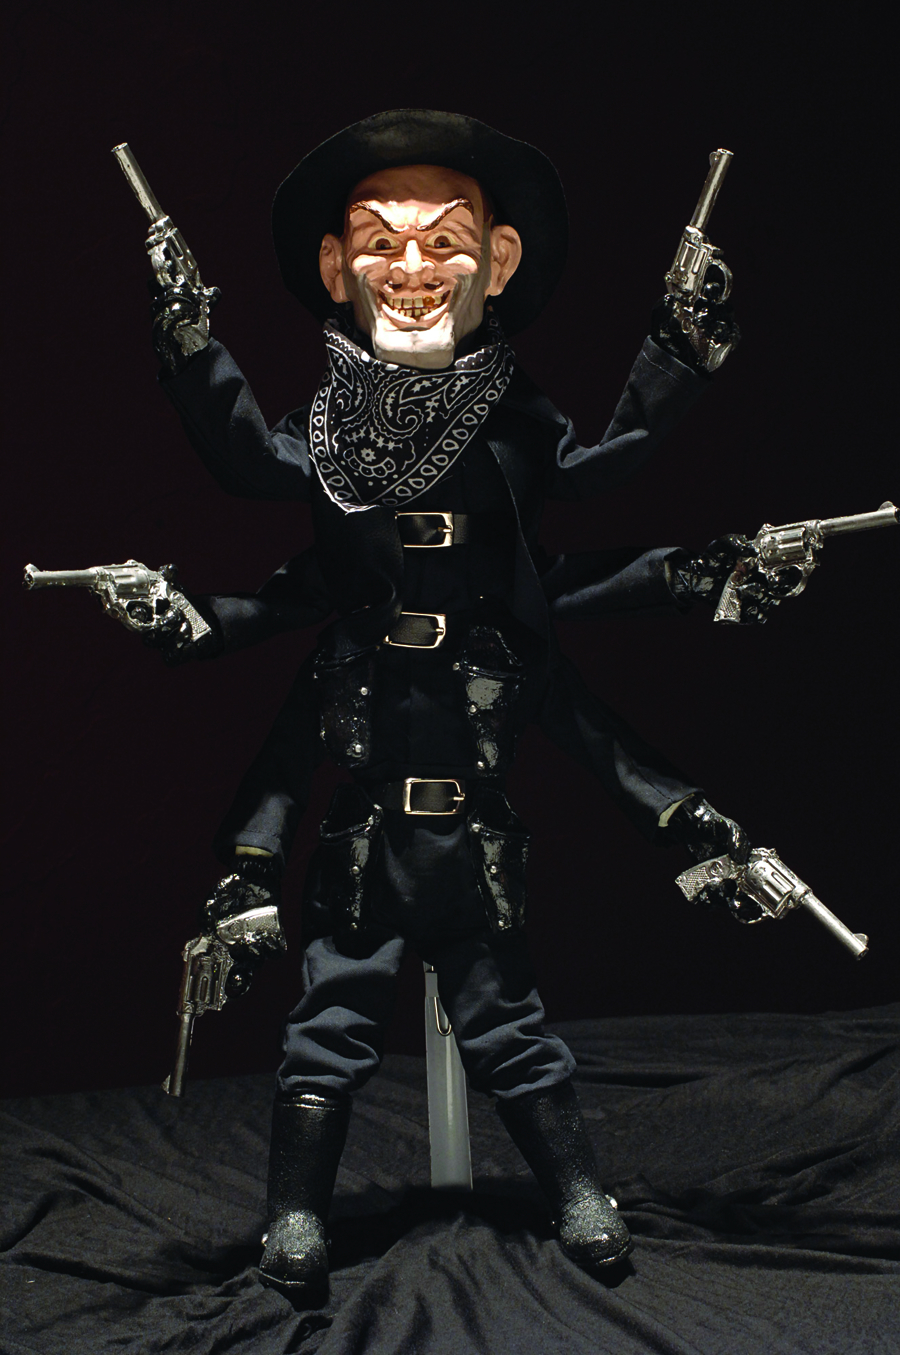 PUPPET MASTER STEALTH SIX SHOOTER 1/1 SCALE REPLICA